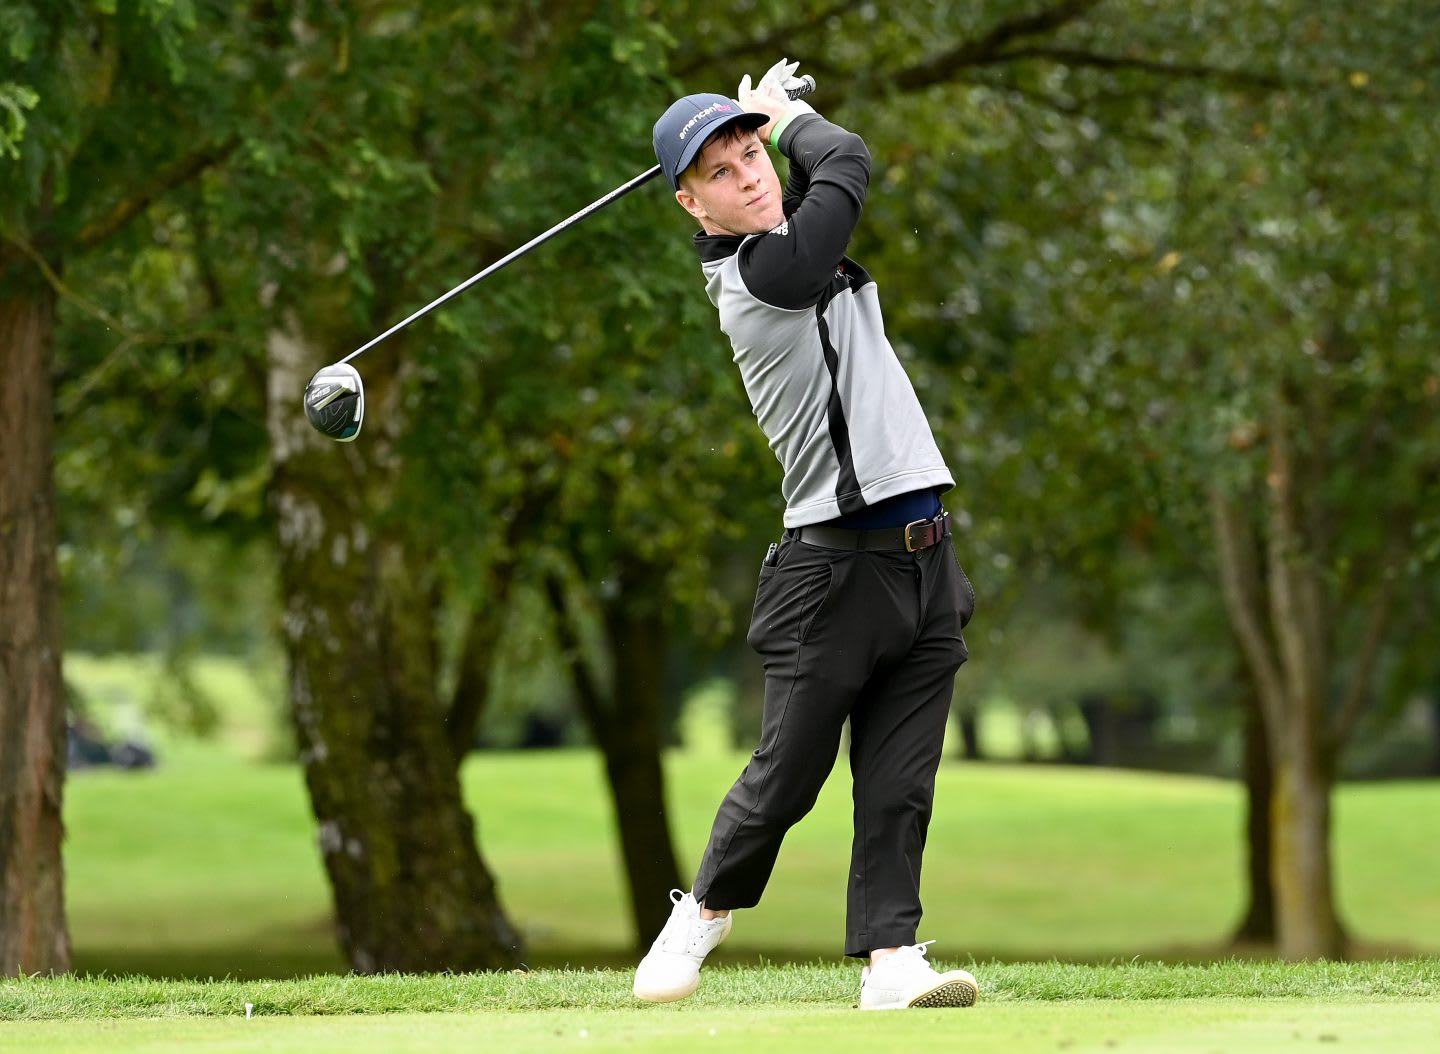 Brendan Lawlor of Ireland in action during a practice round prior to the ISPS HANDA UK Championship at The Belfry on August 26, England, disability, golfer, gold, competition, adidas, athlete